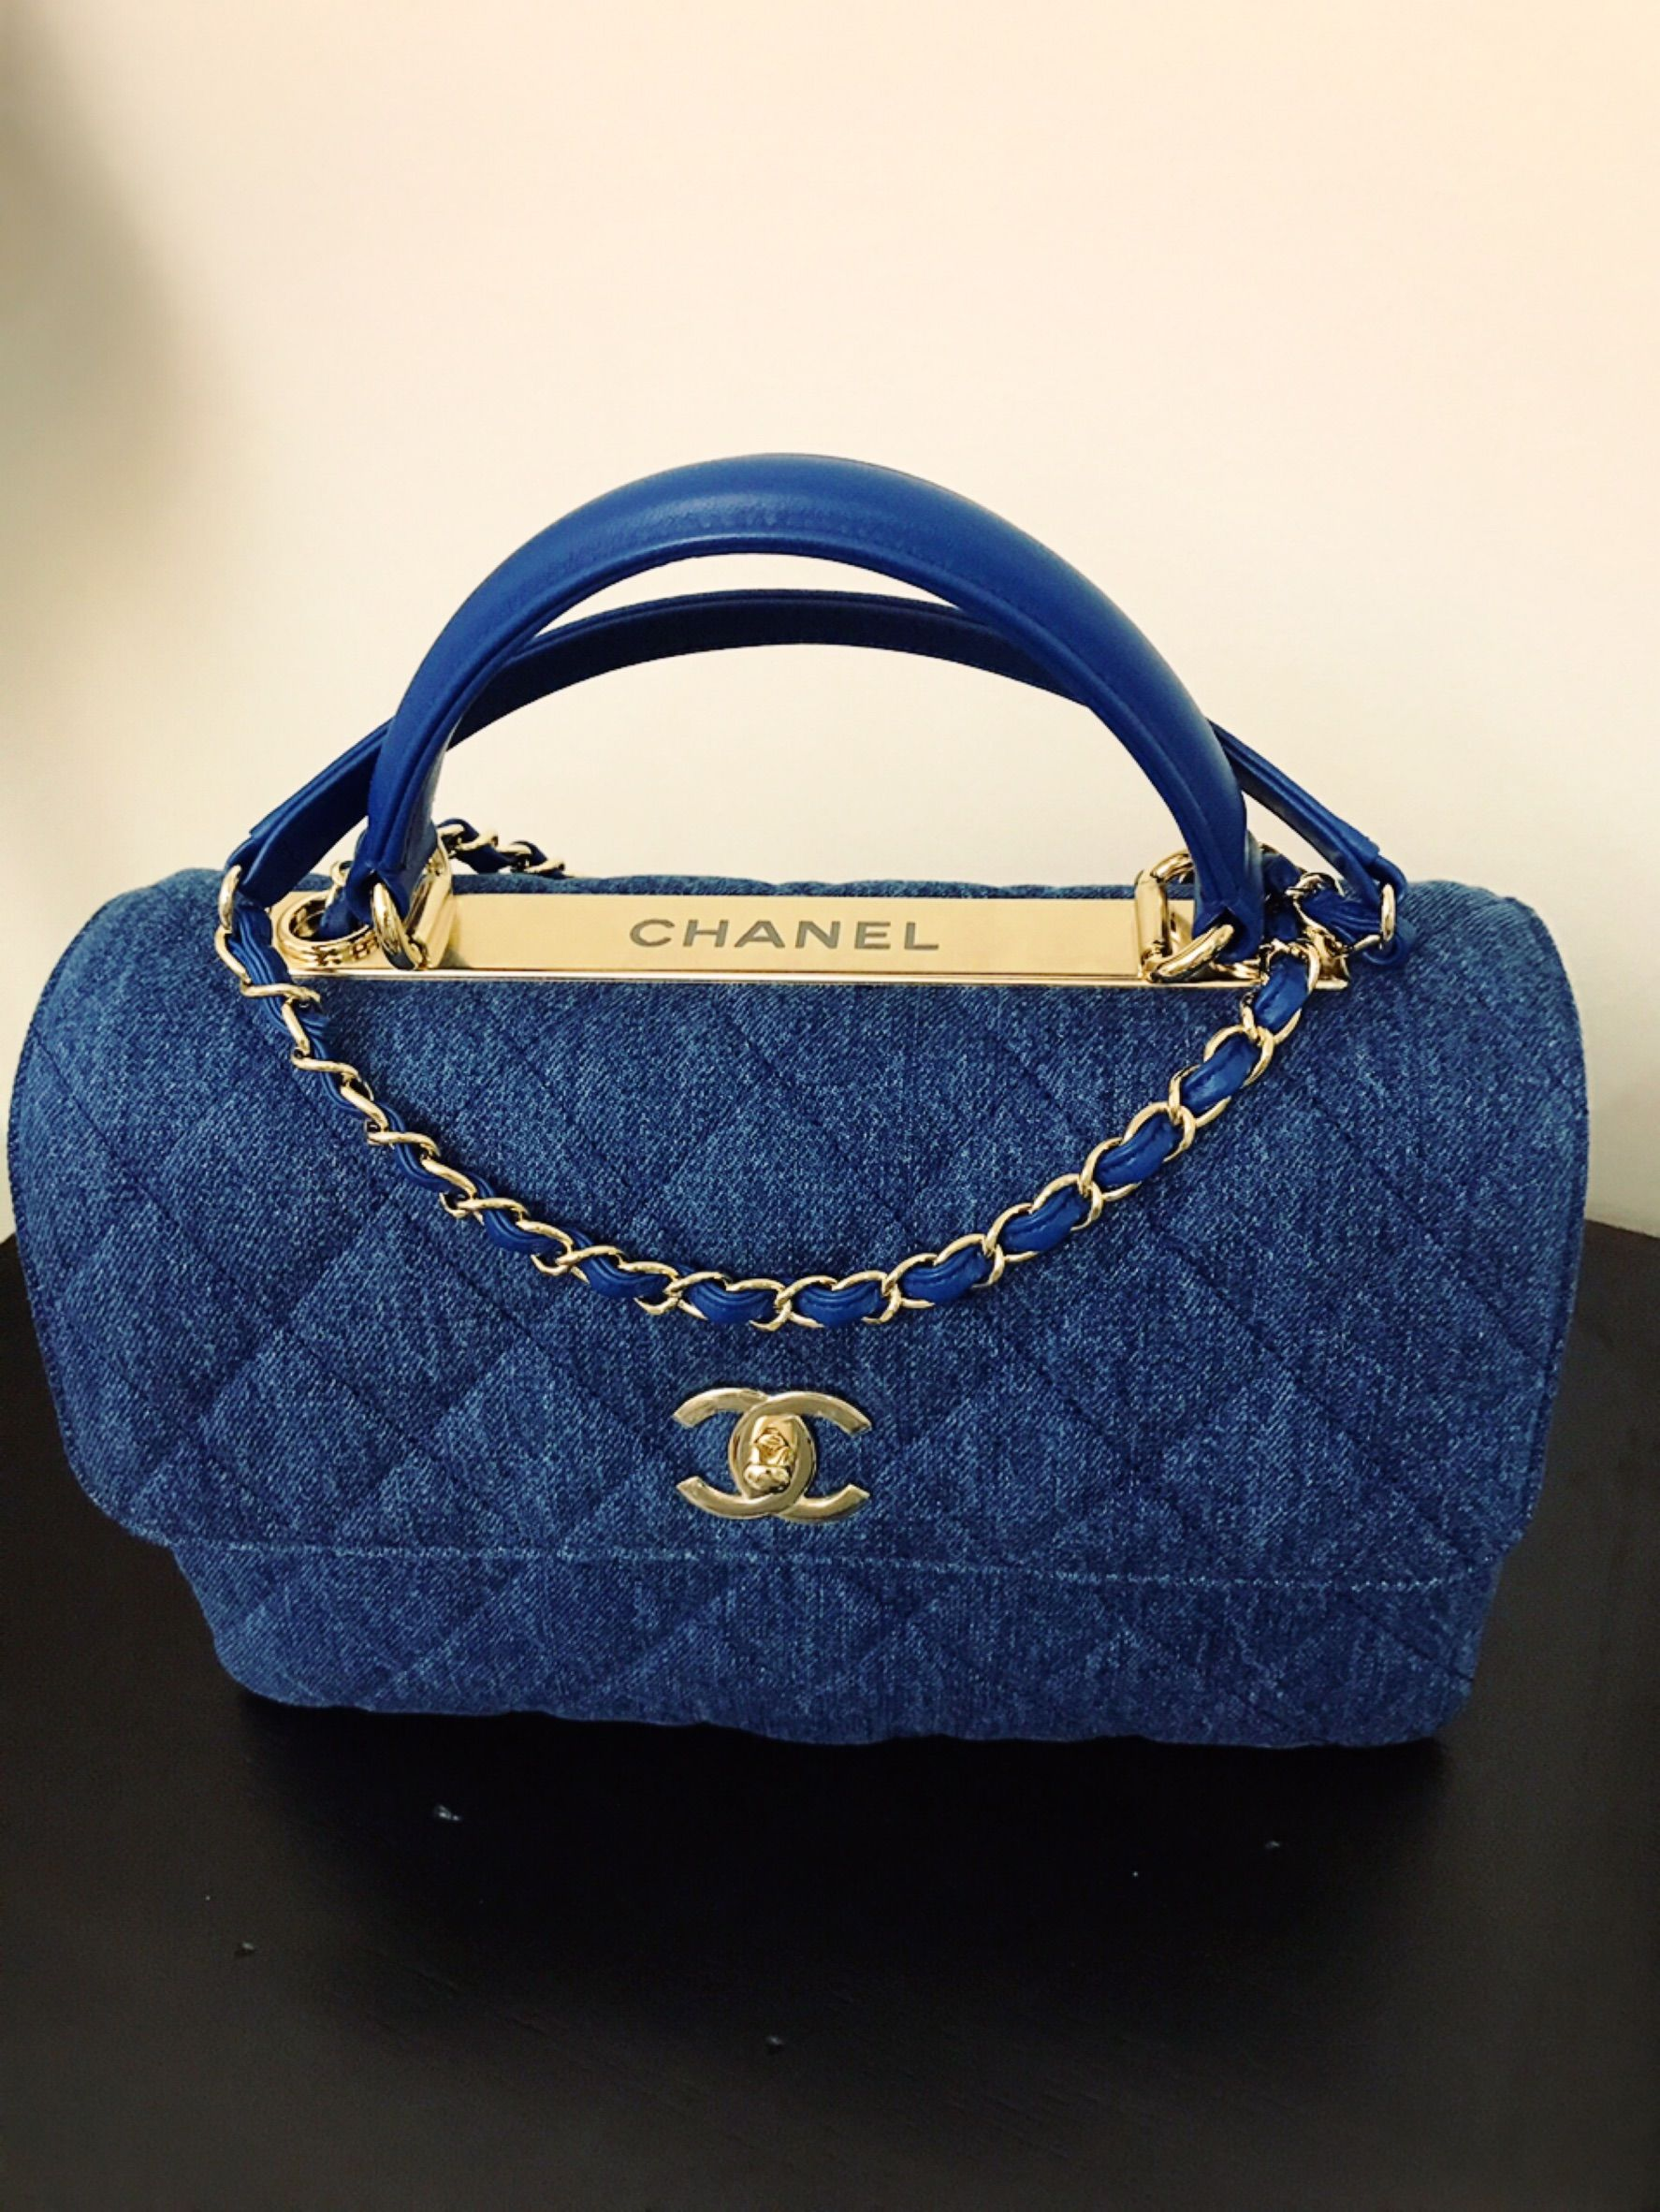 89cd2bd4083ffd Chanel trendy cc denim bag, D'ART 2017 In style .. light weight with rooms